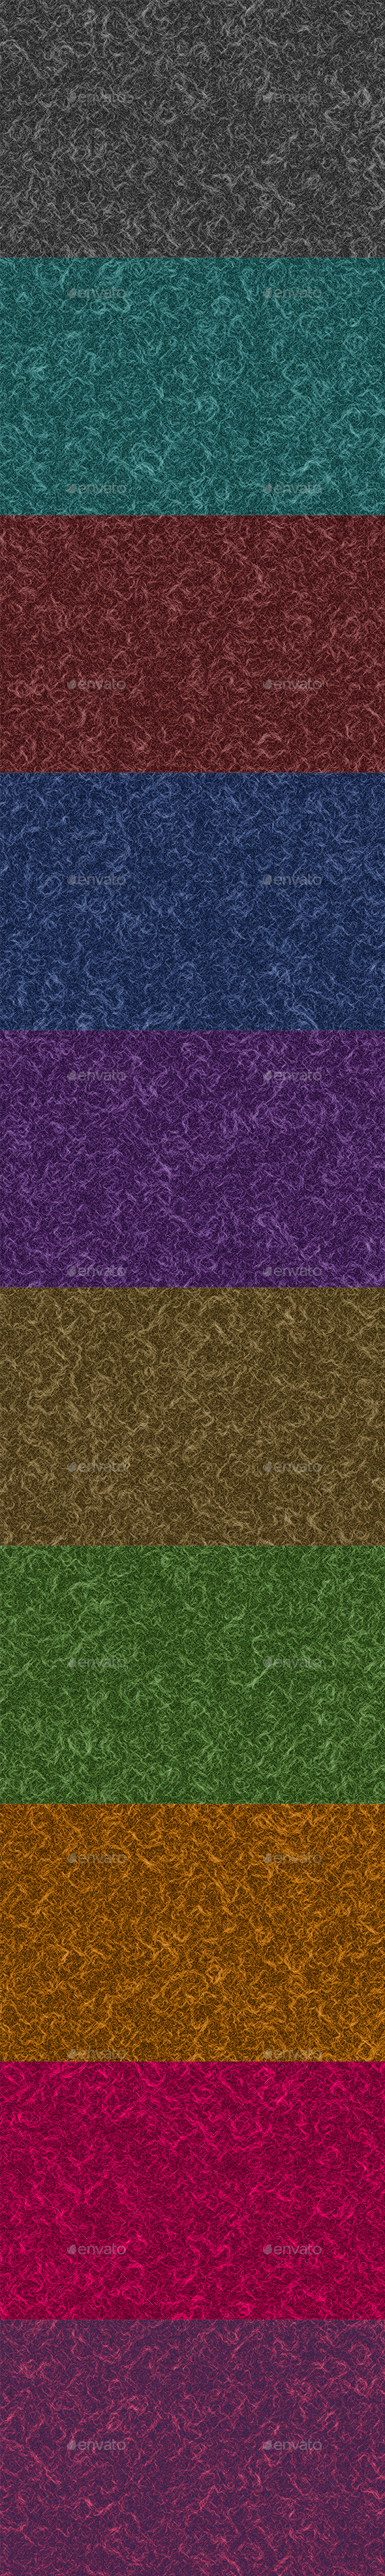 Abstract Texture Backgrounds - Abstract Backgrounds